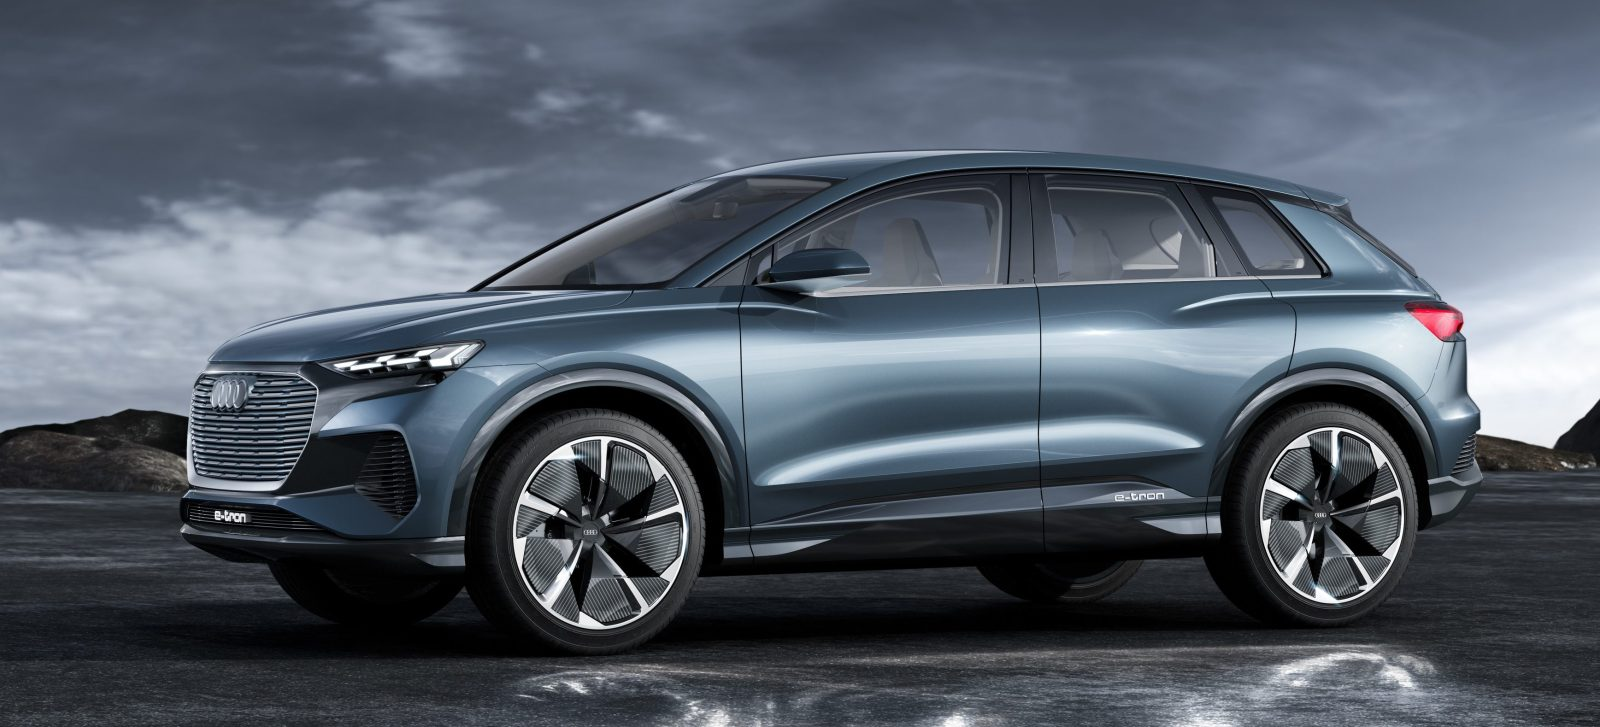 Audi Unveils Small Electric Q4 E Tron Suv With 280 Miles Of Range